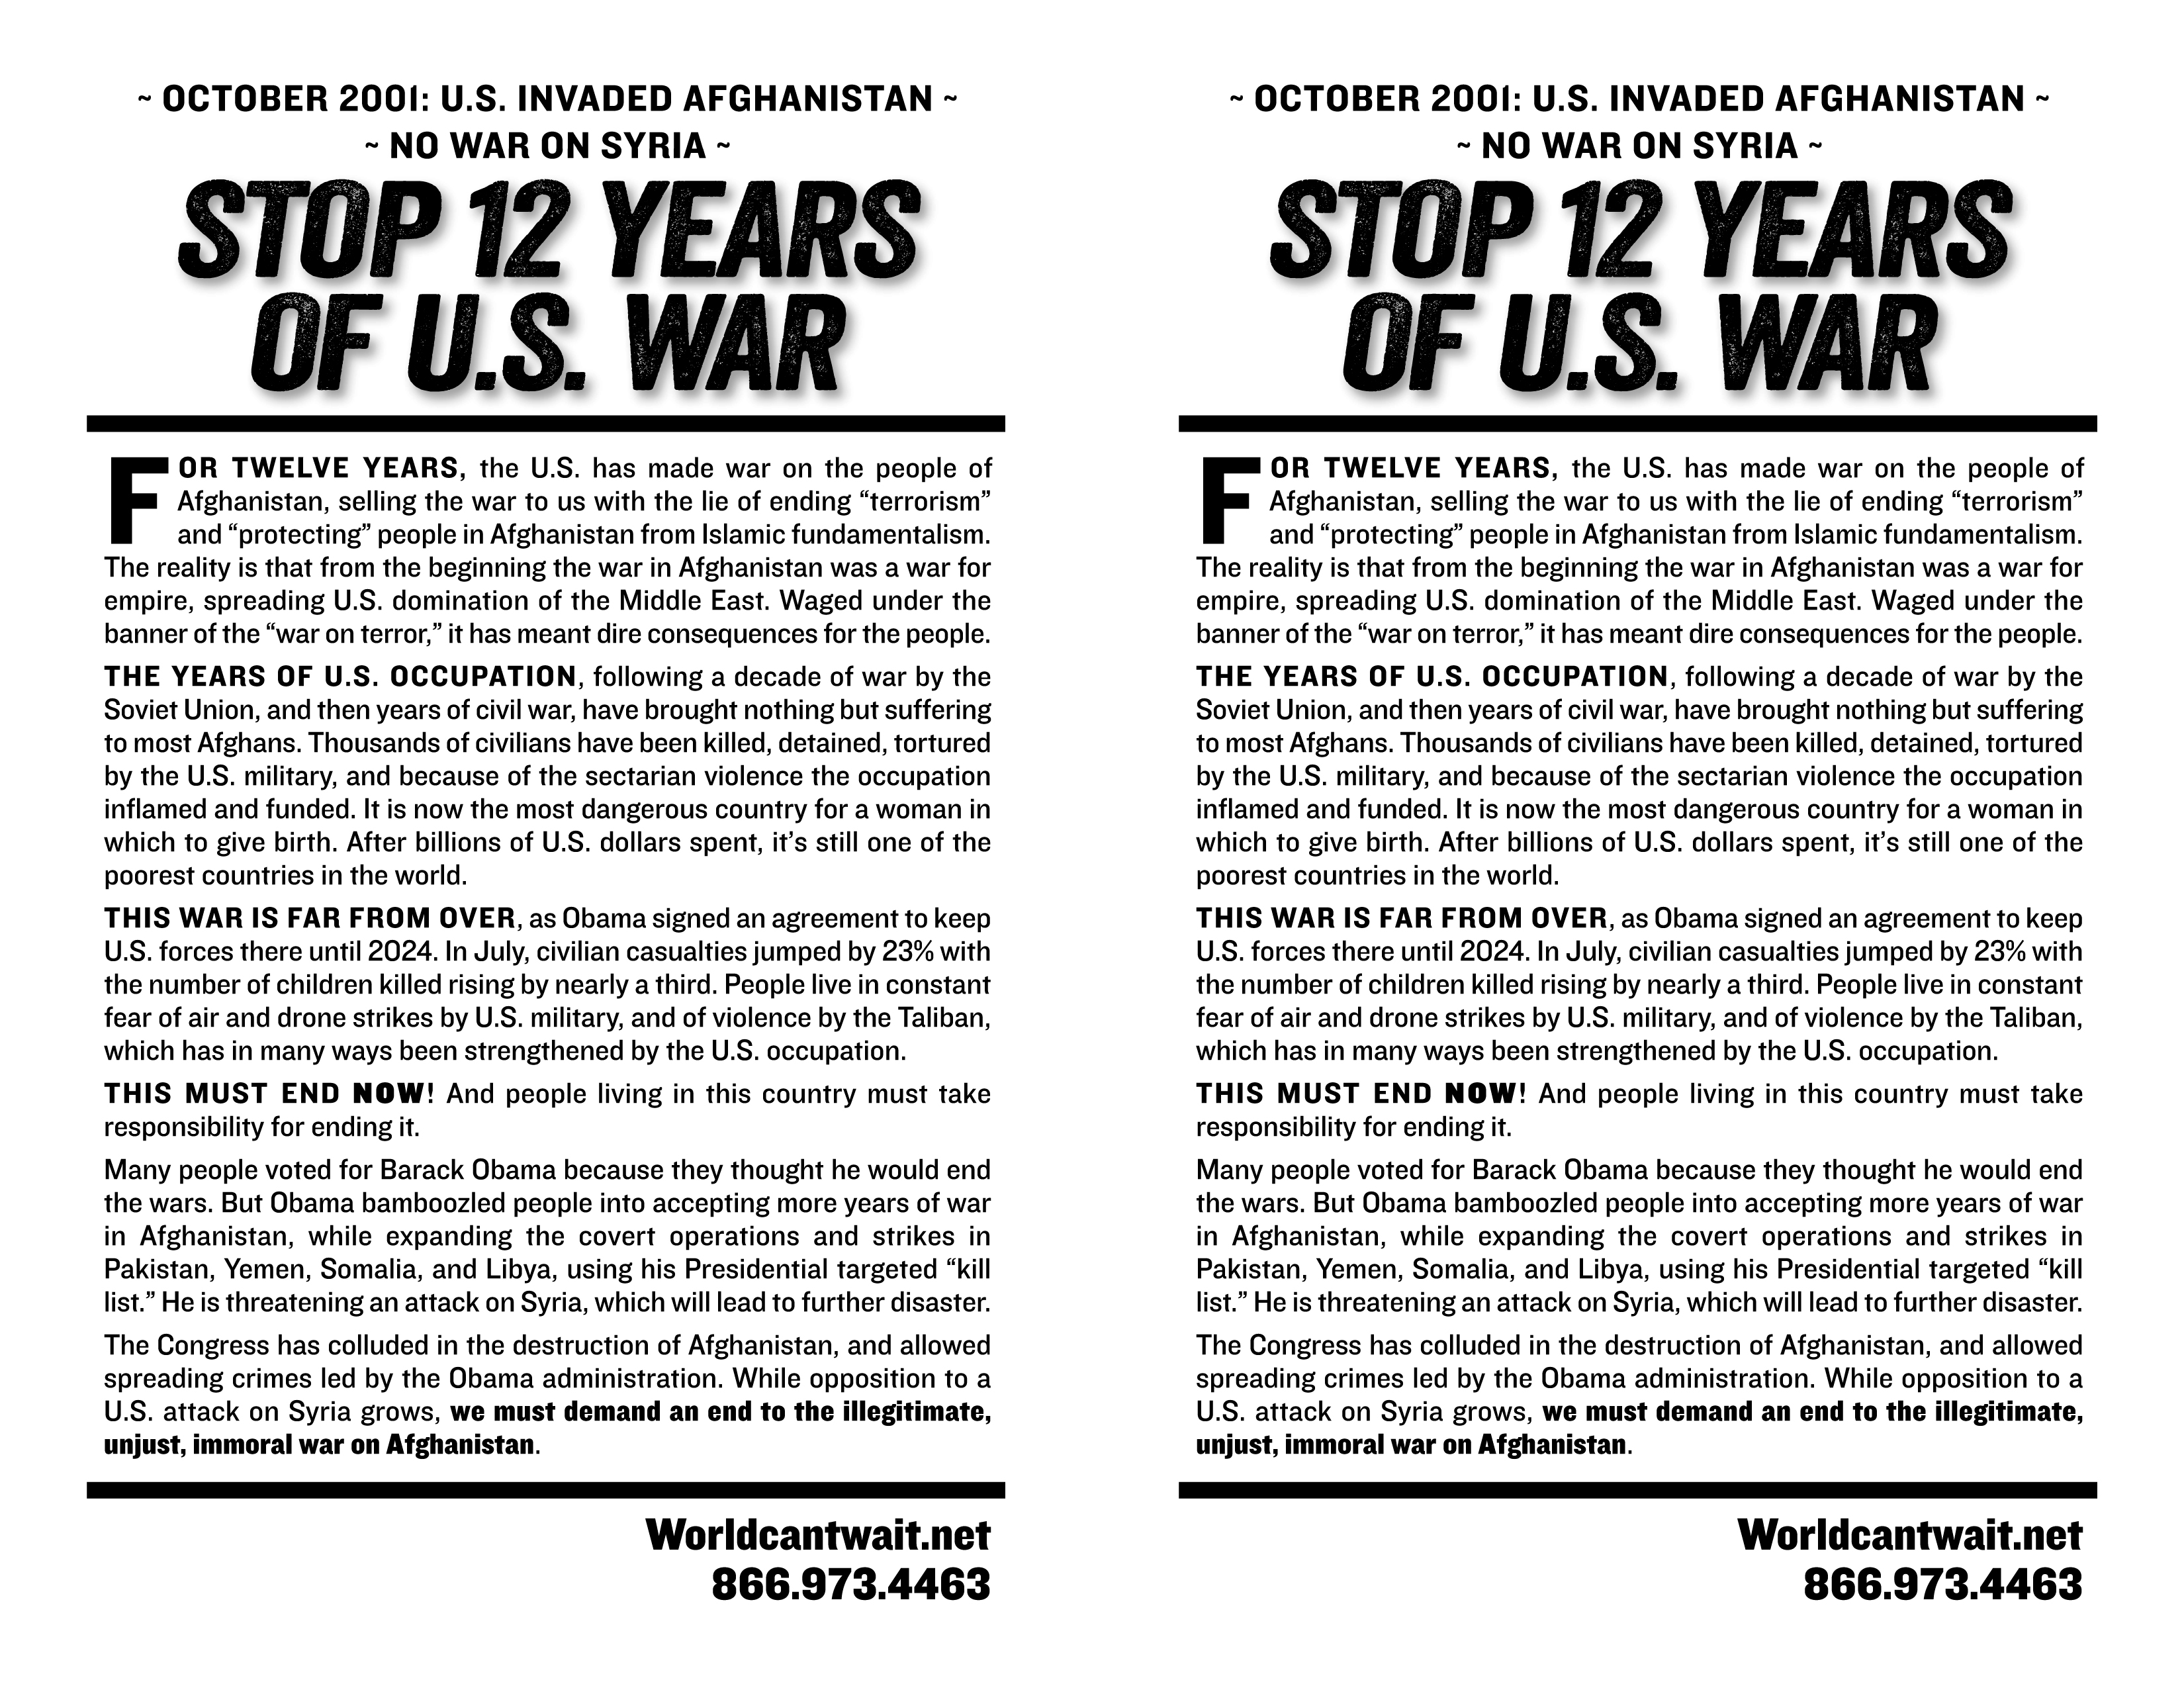 Protest: No War on Syria